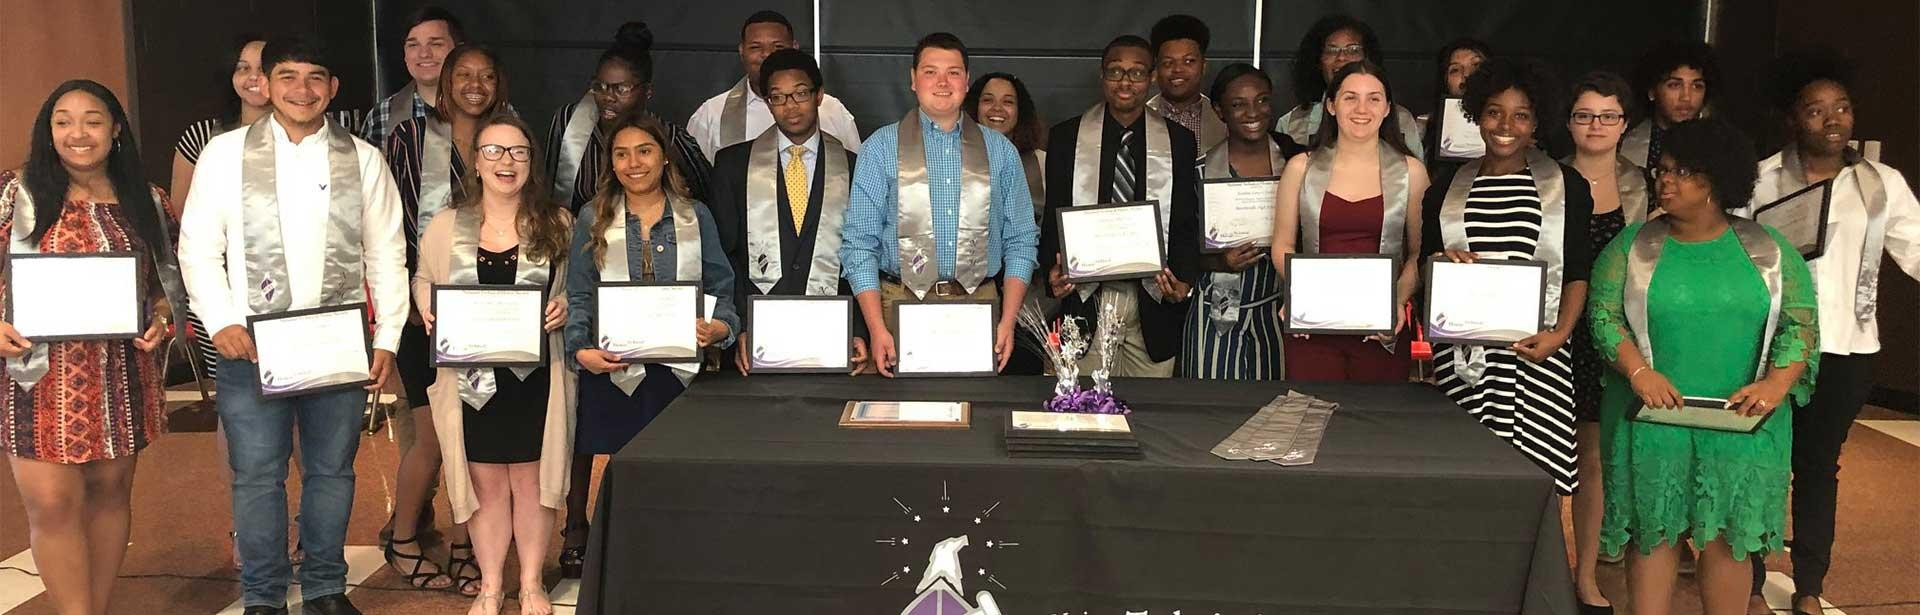 Group of National Technical Honor Society students